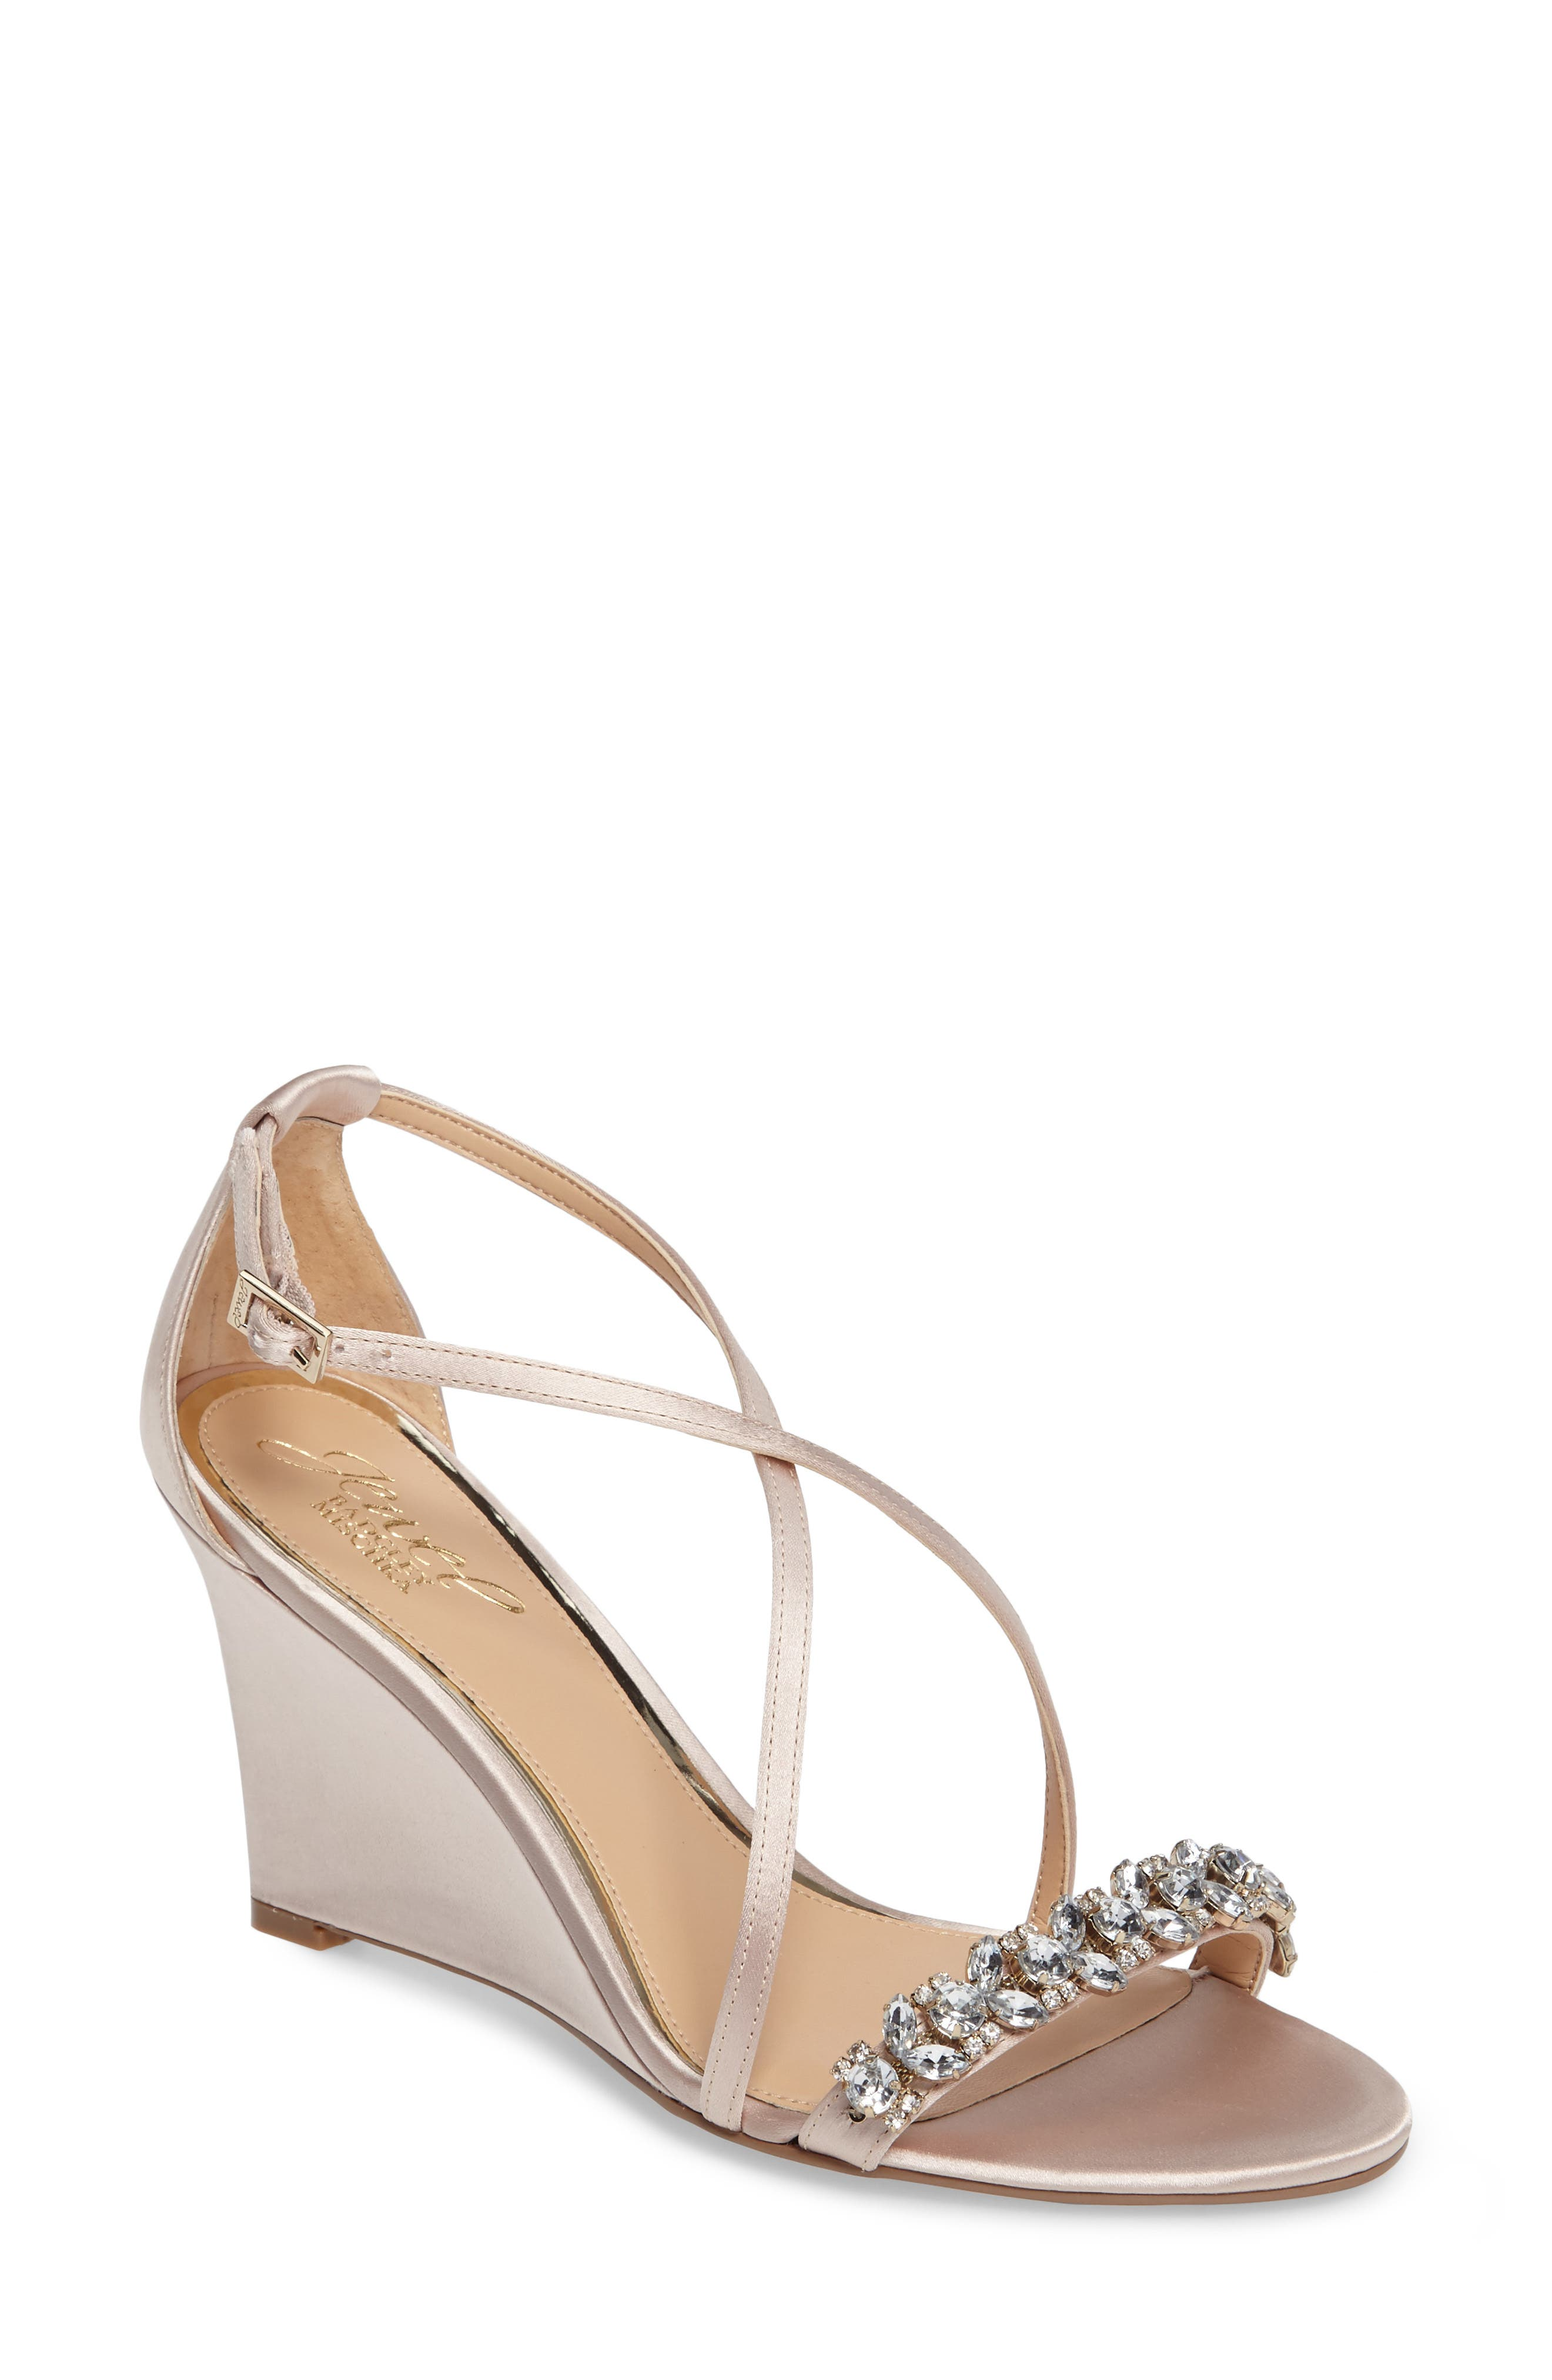 Metallic Wedge Heels gBmnJvJs